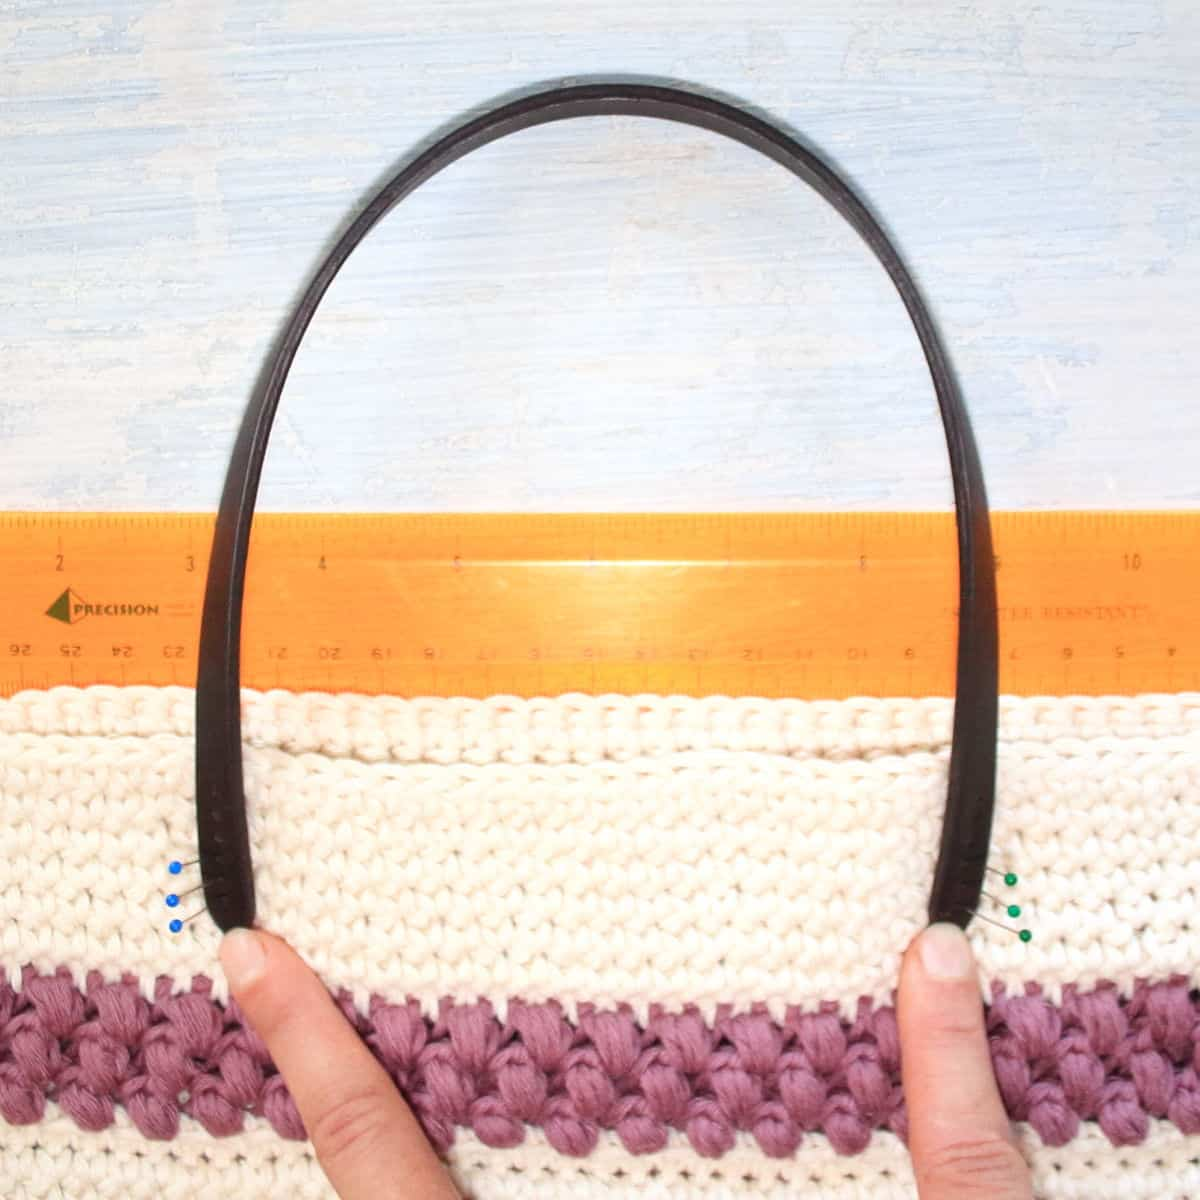 Pin The Leather Strap On Your Red Clover Summer Tote Bag.